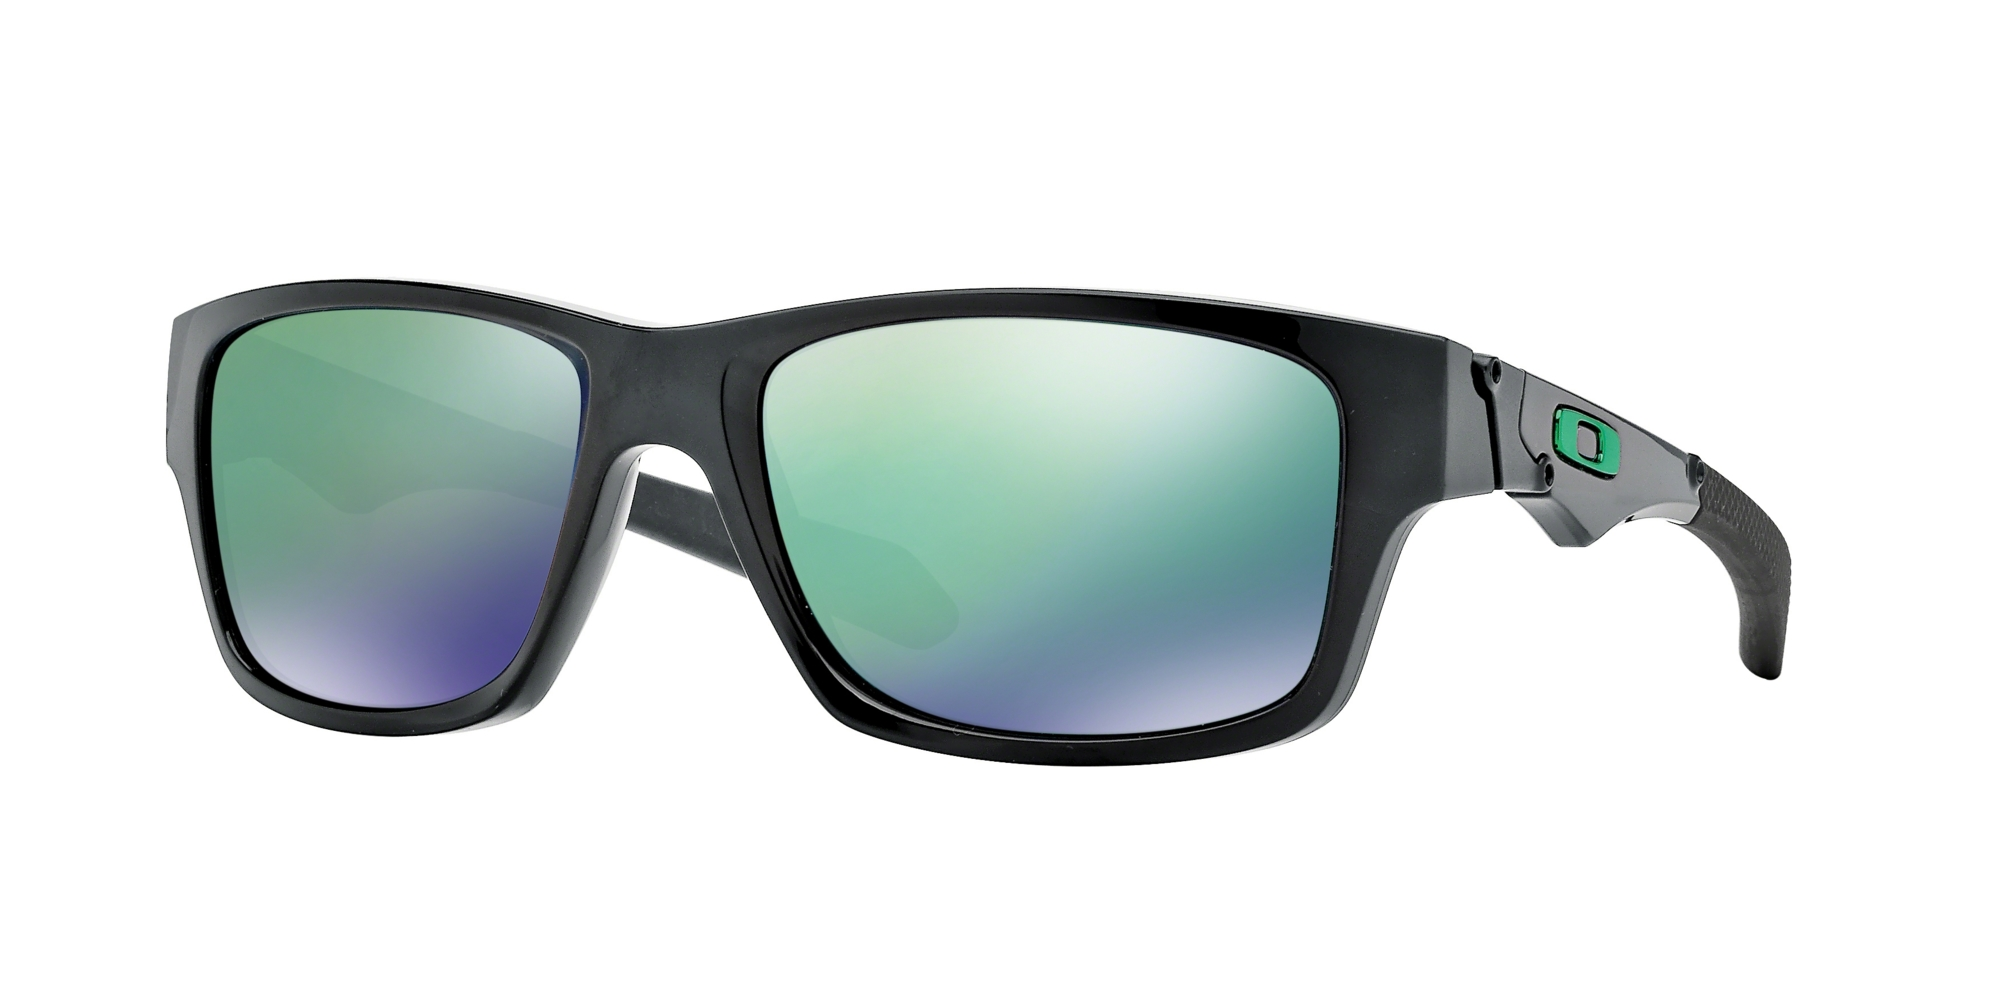 Oakley Medium Men Rectangle Sunglasses - Oo9135-05